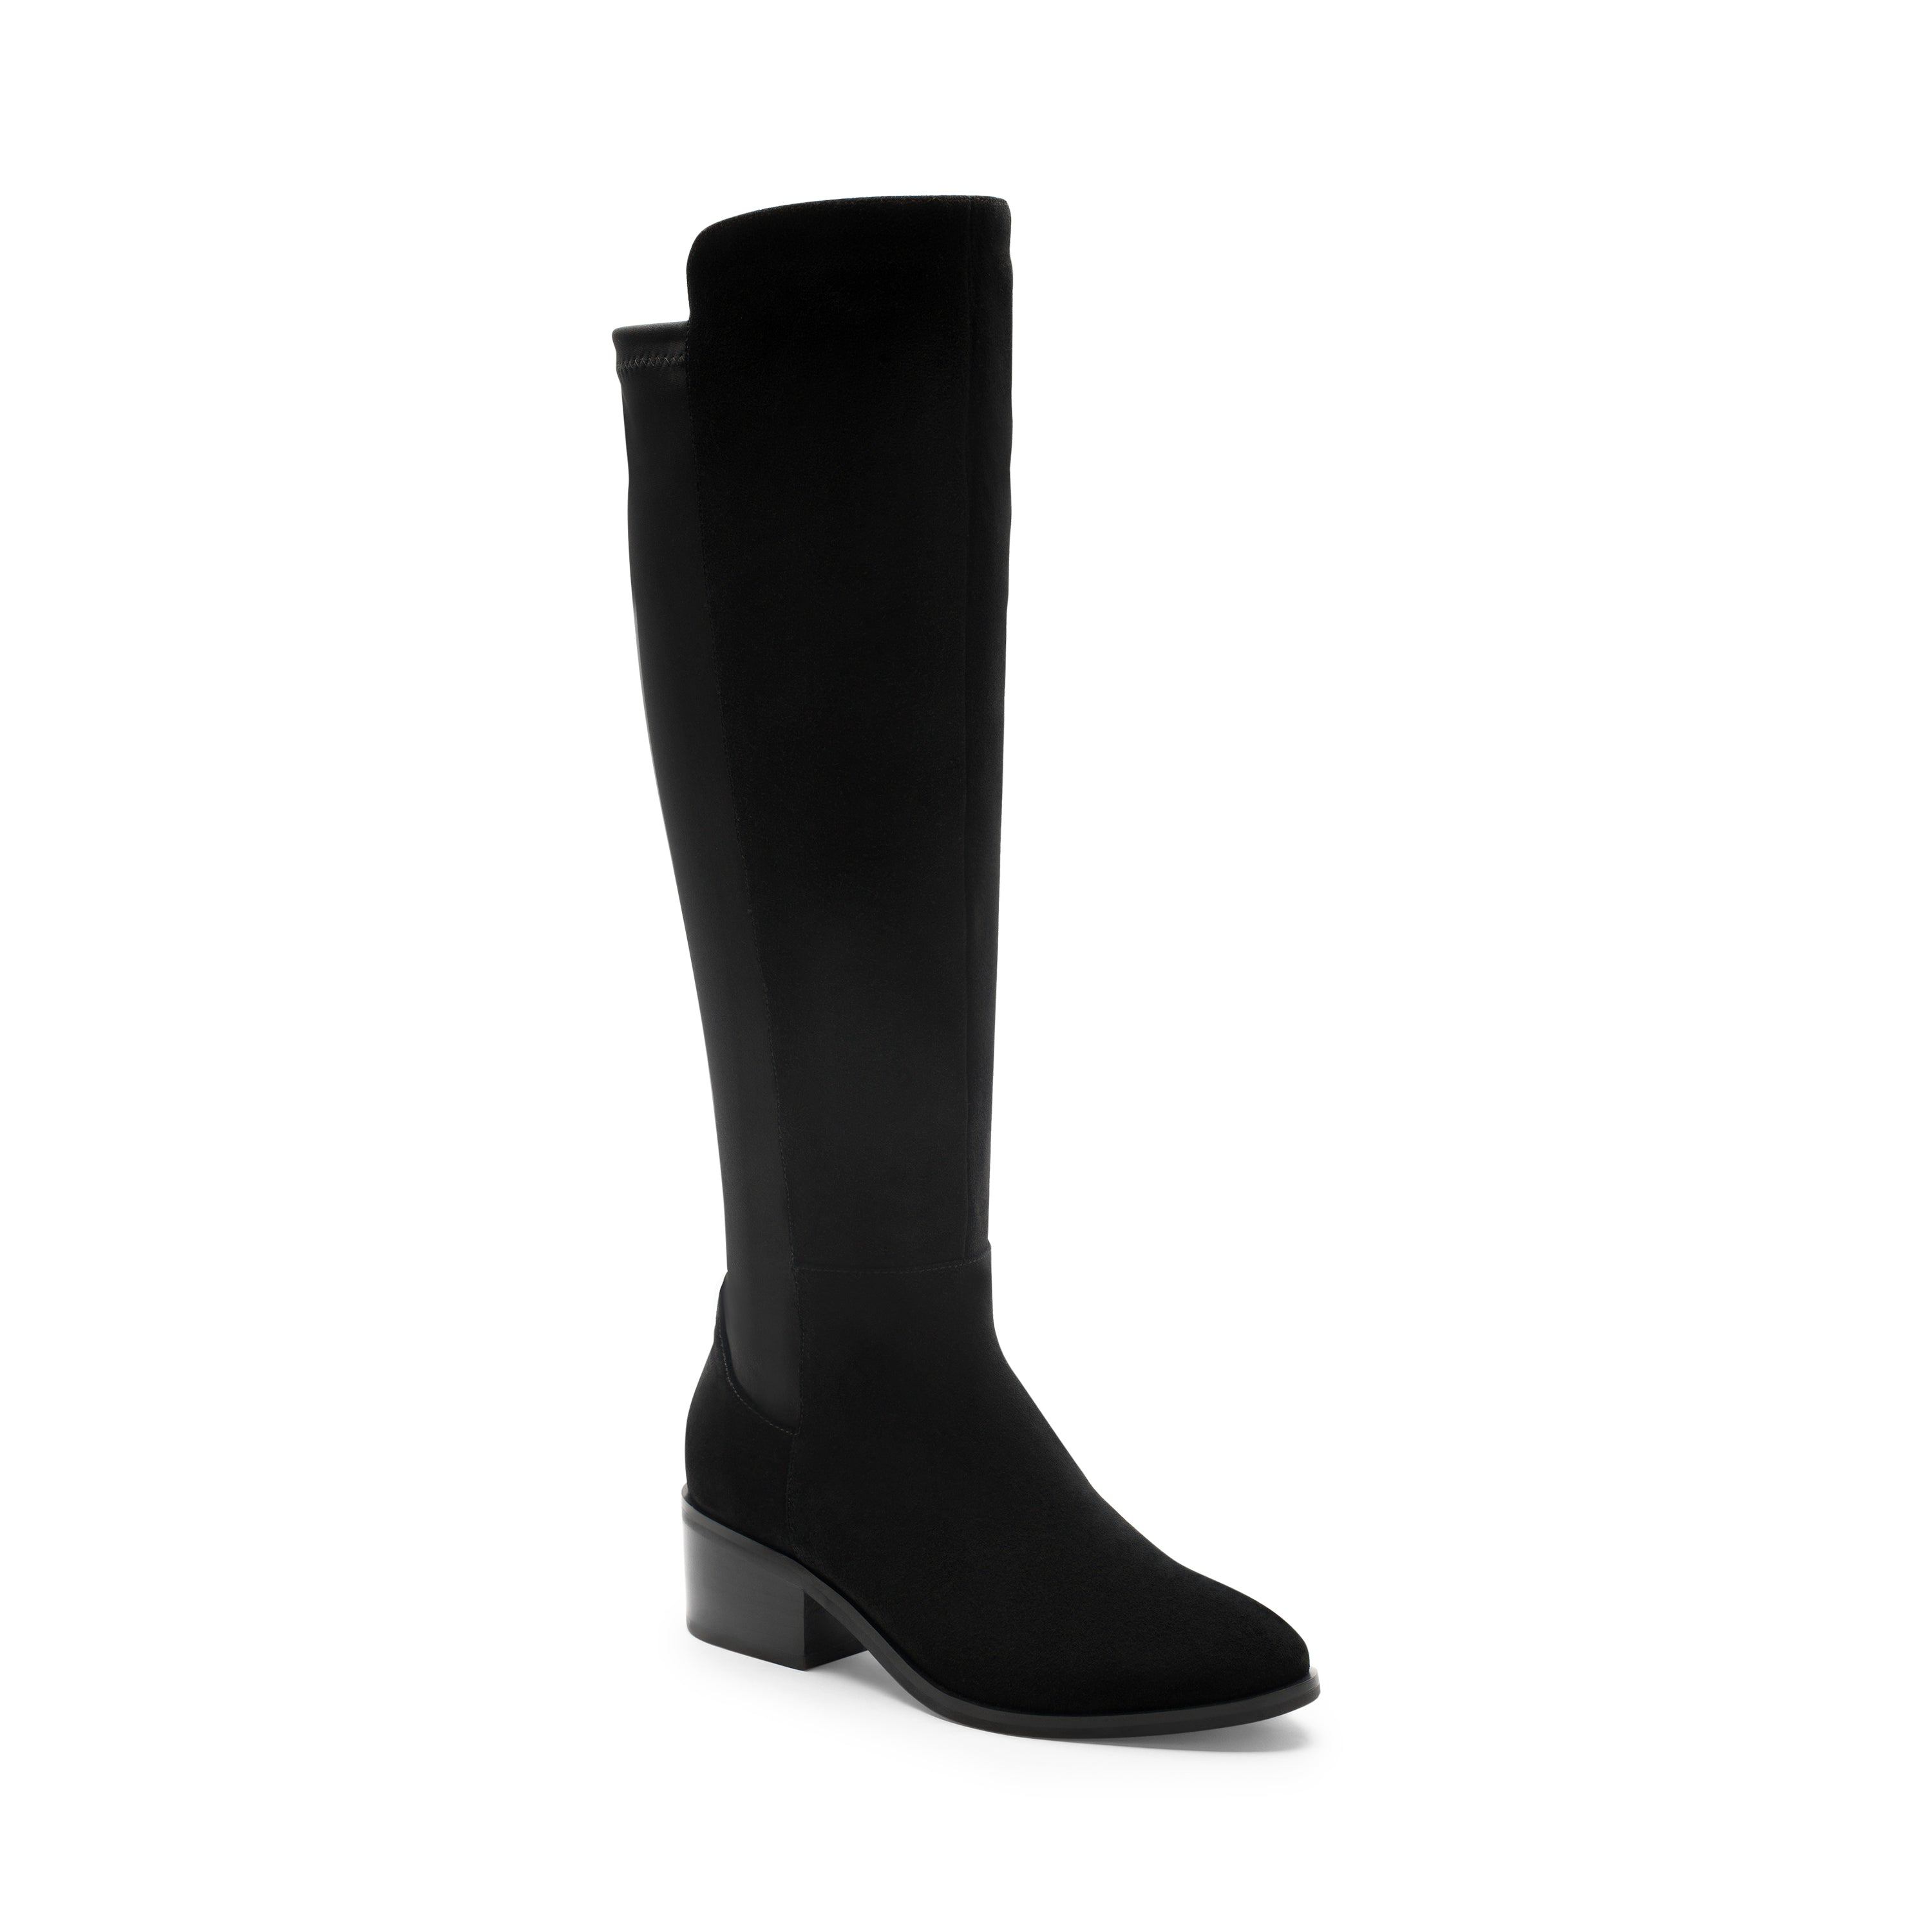 The Waterproof Tall Boot with Stretch Back in Black